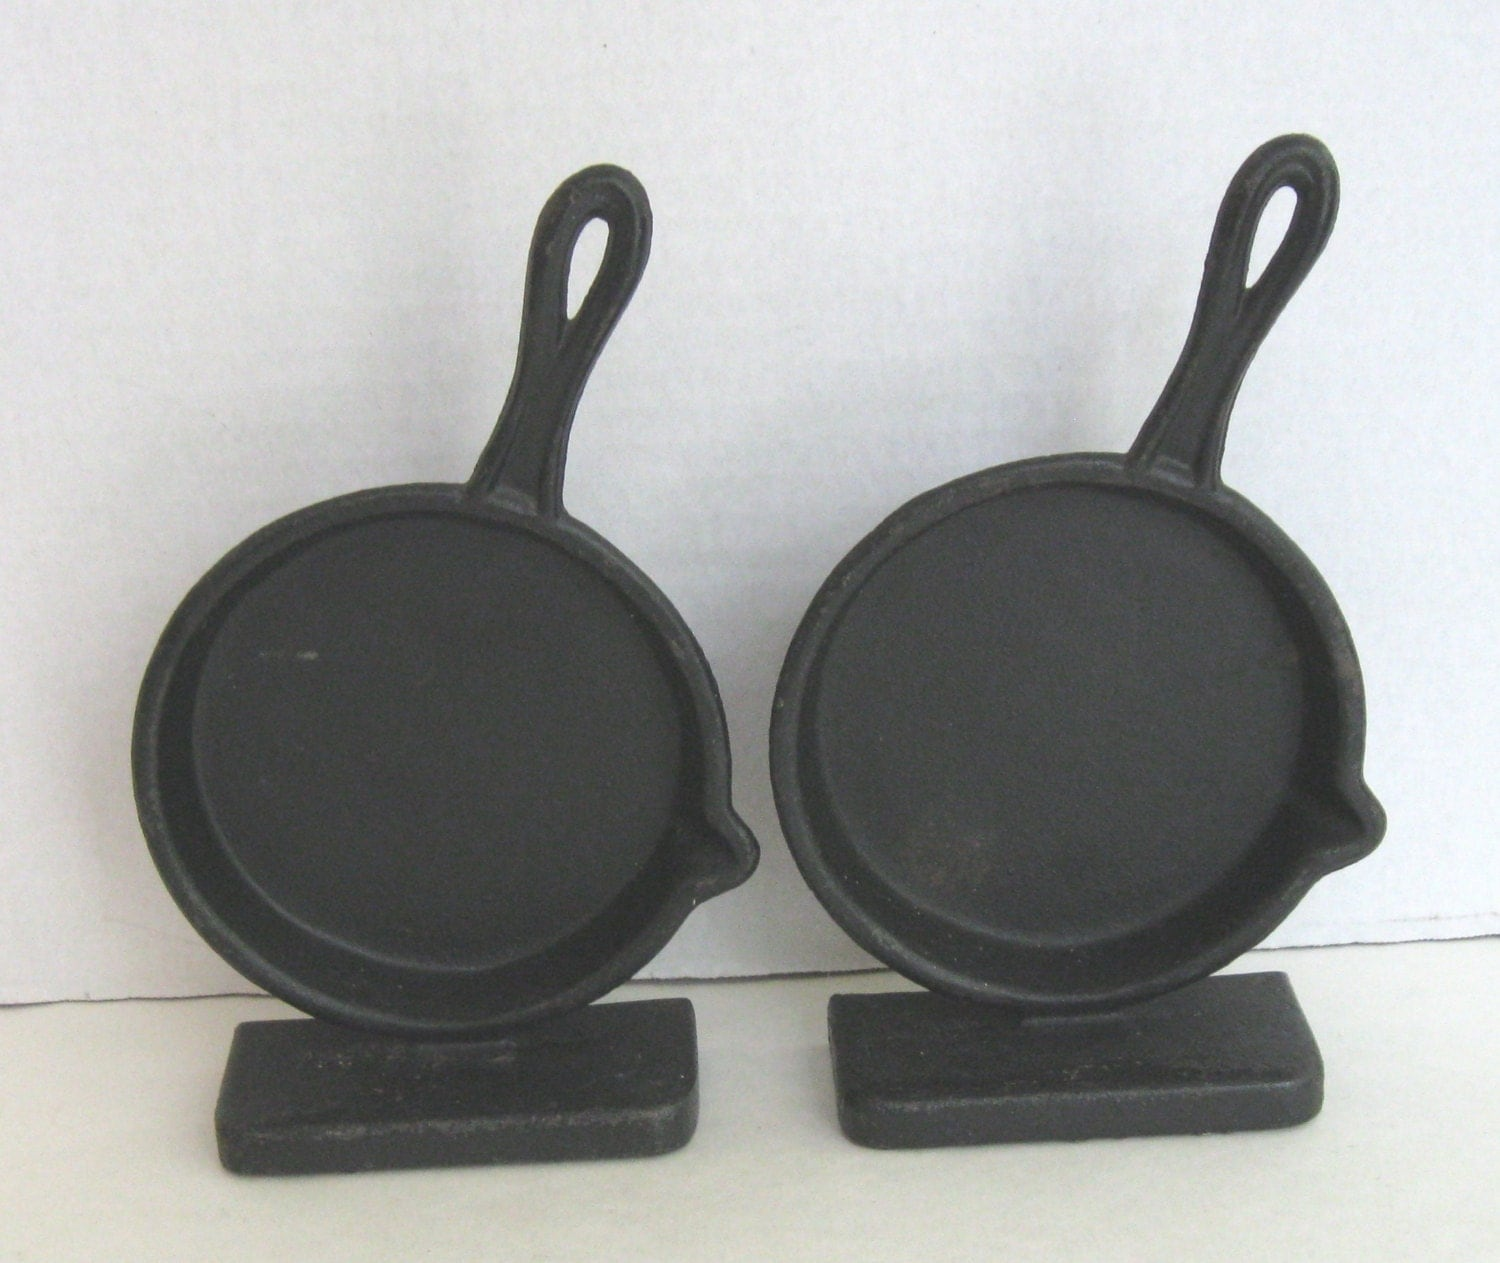 Kitchen Bookends: Emig Cast Iron Skillet Kitchen Bookends